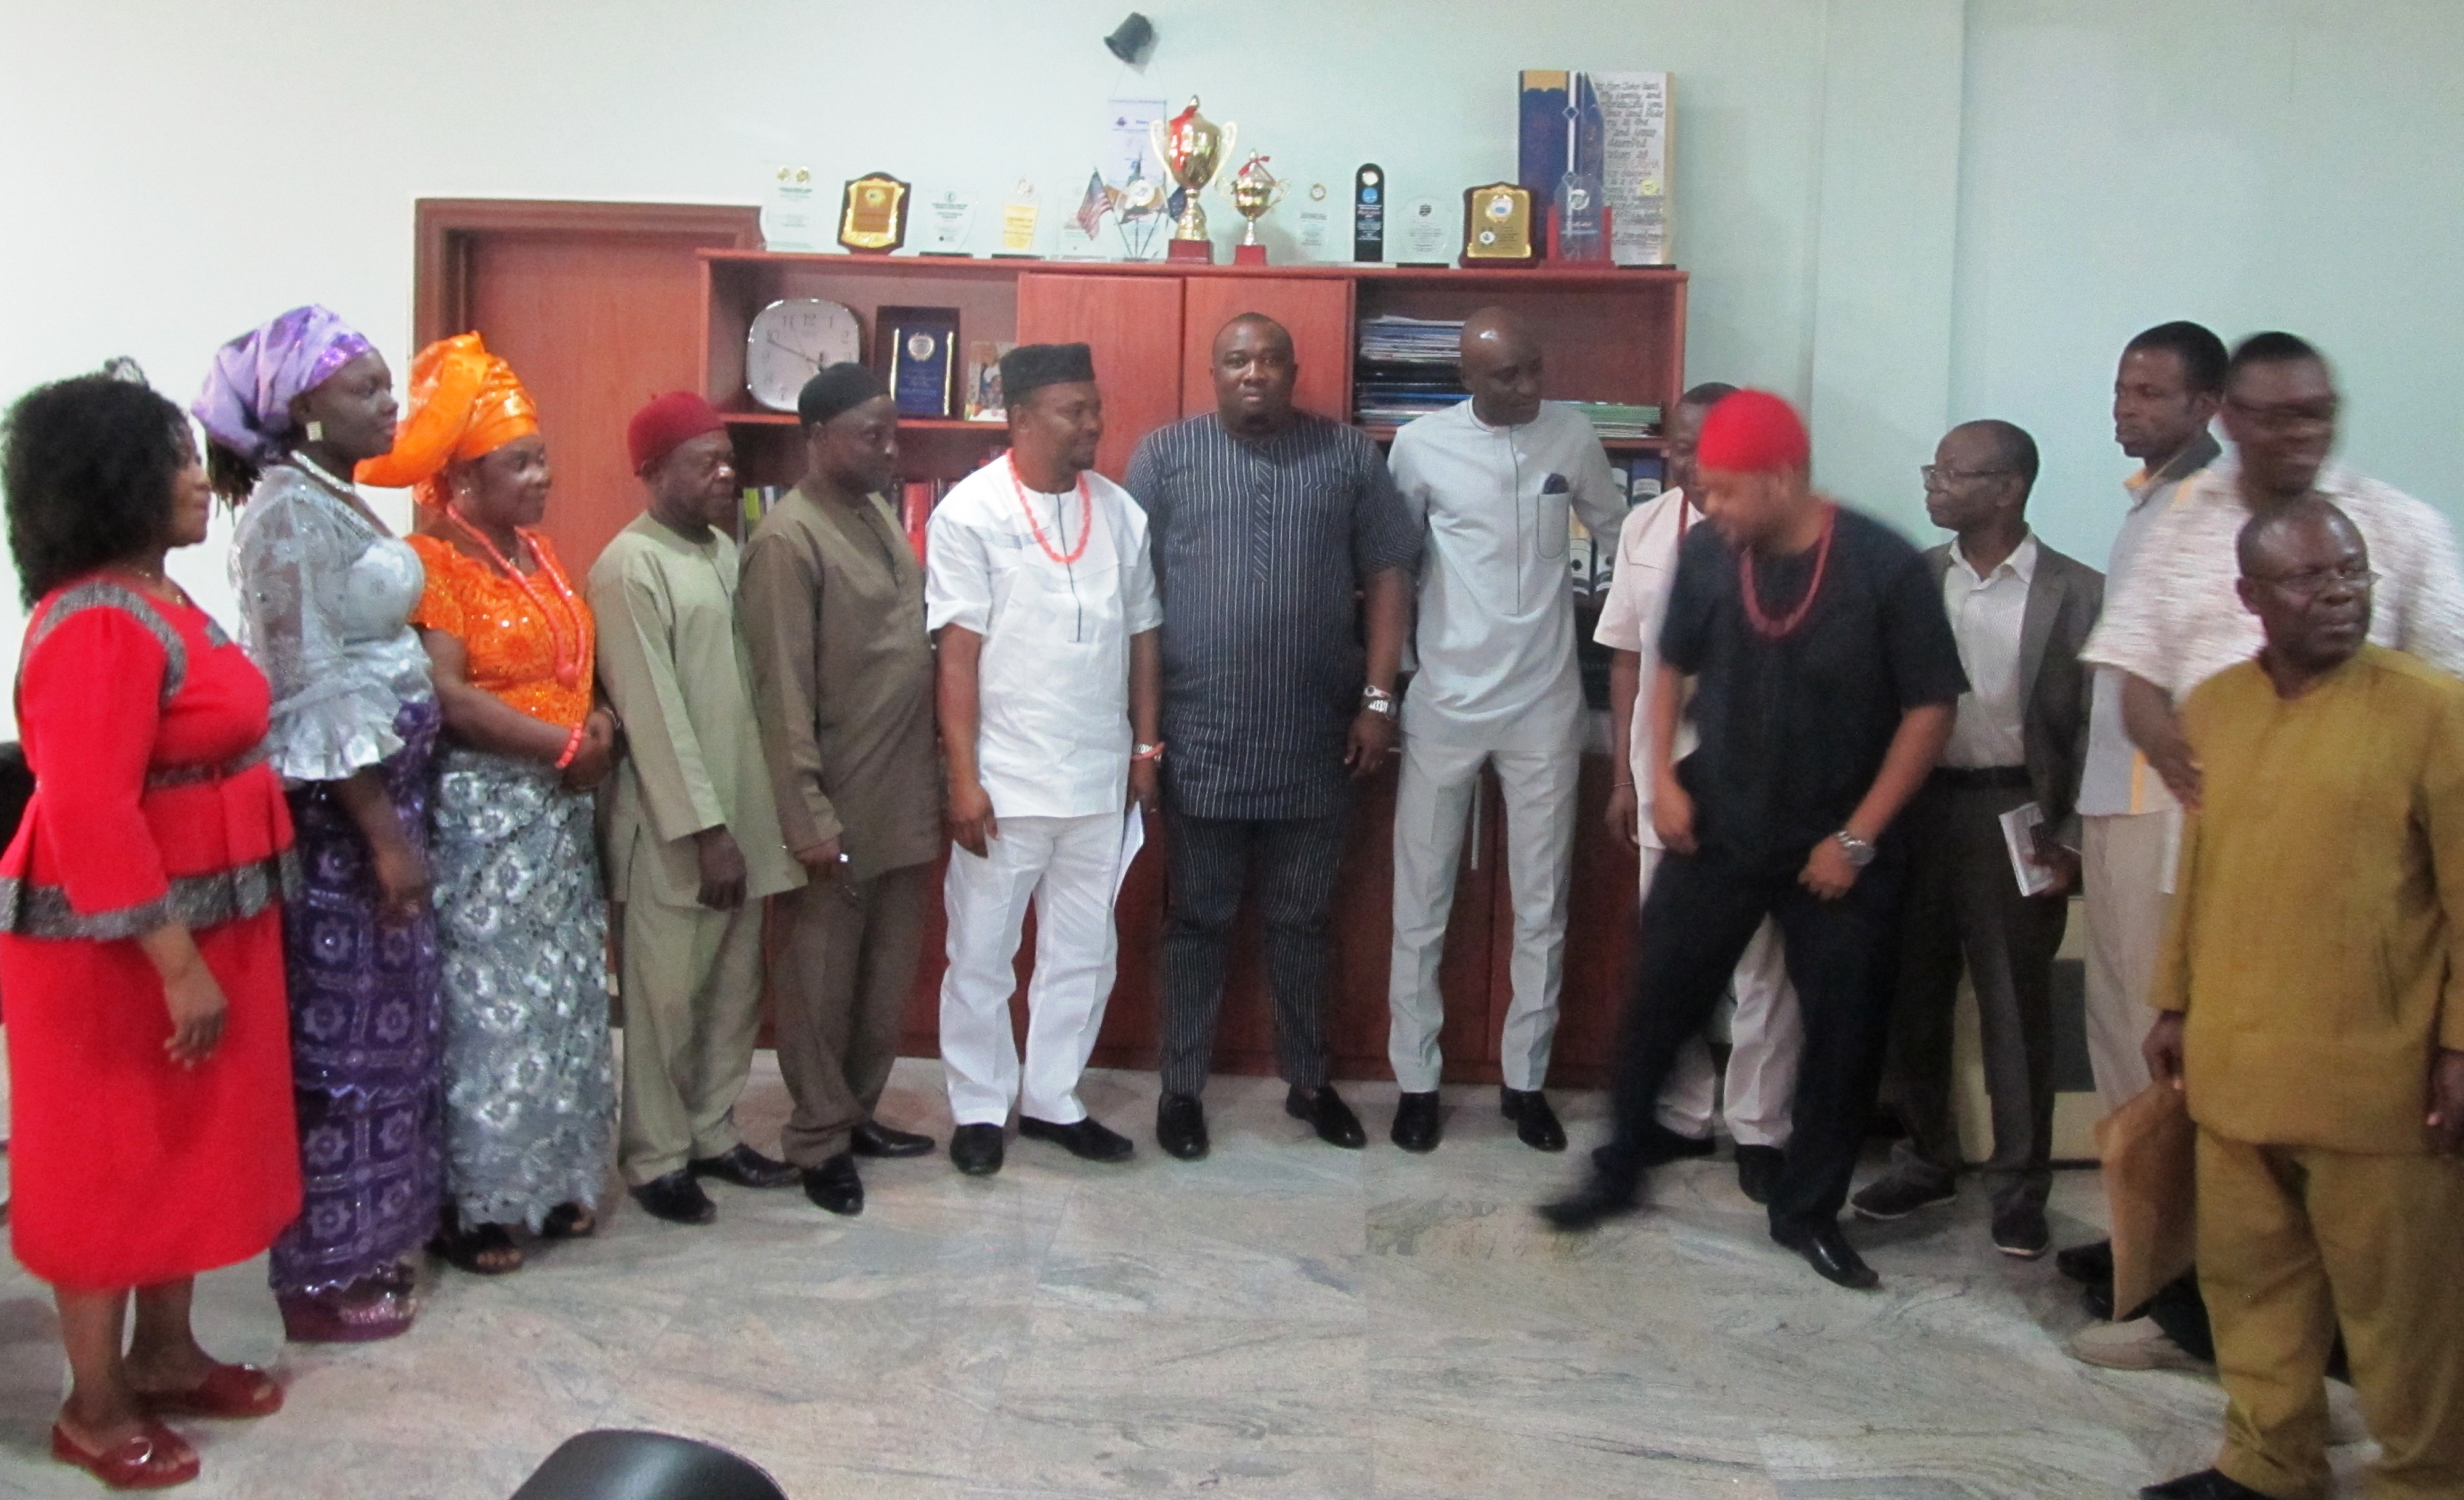 Nzuko Ndi Abia delegation in a photoshoot with the house leadership after the courtesy visit